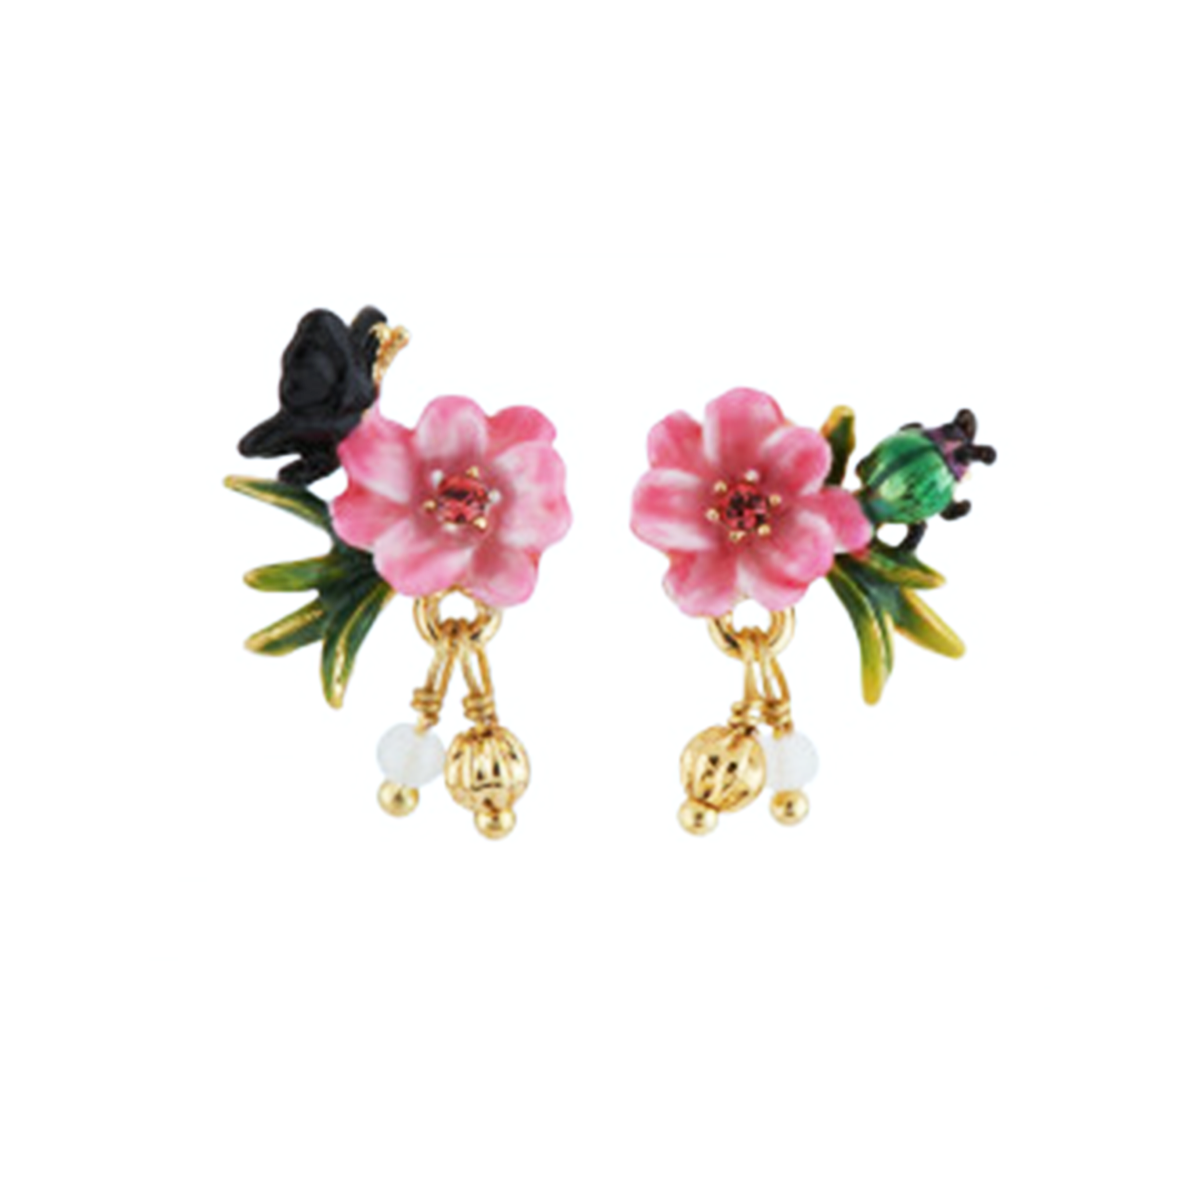 Flower Dangling Earrings with Rhinestones and Pearls